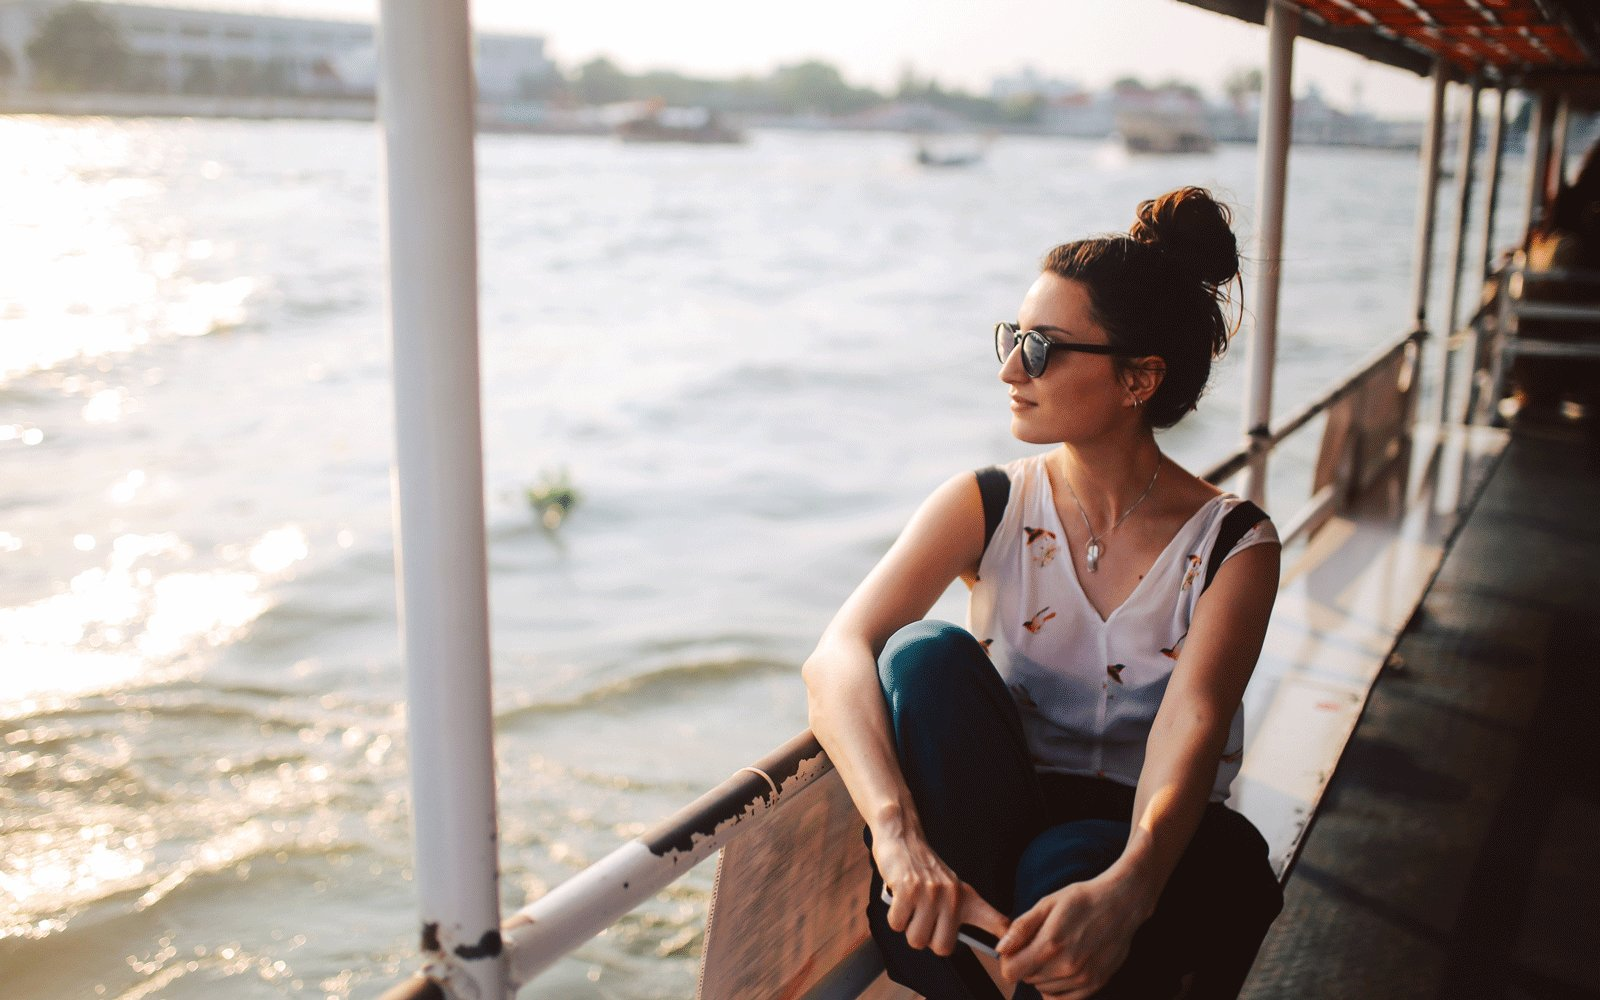 7 Life-changing Beauty Tips I Learned From Traveling the World